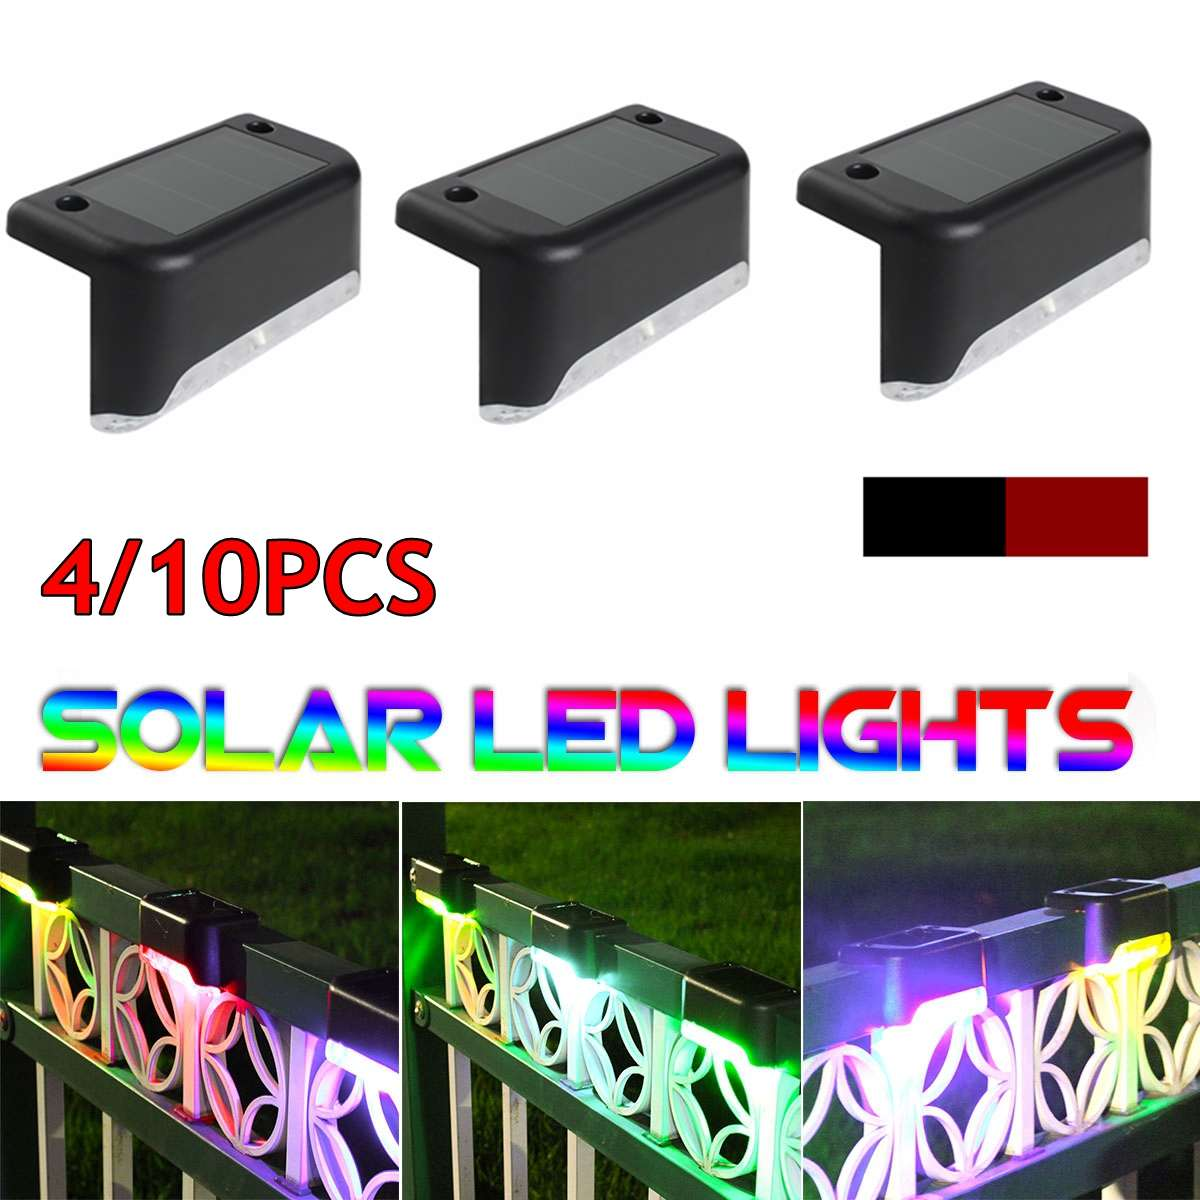 4/10PCS LED Solar Path Stair Outdoor Colorful Light Modern Garden Nightlight Energy Saving Light Yard Wall Landscape Lamp